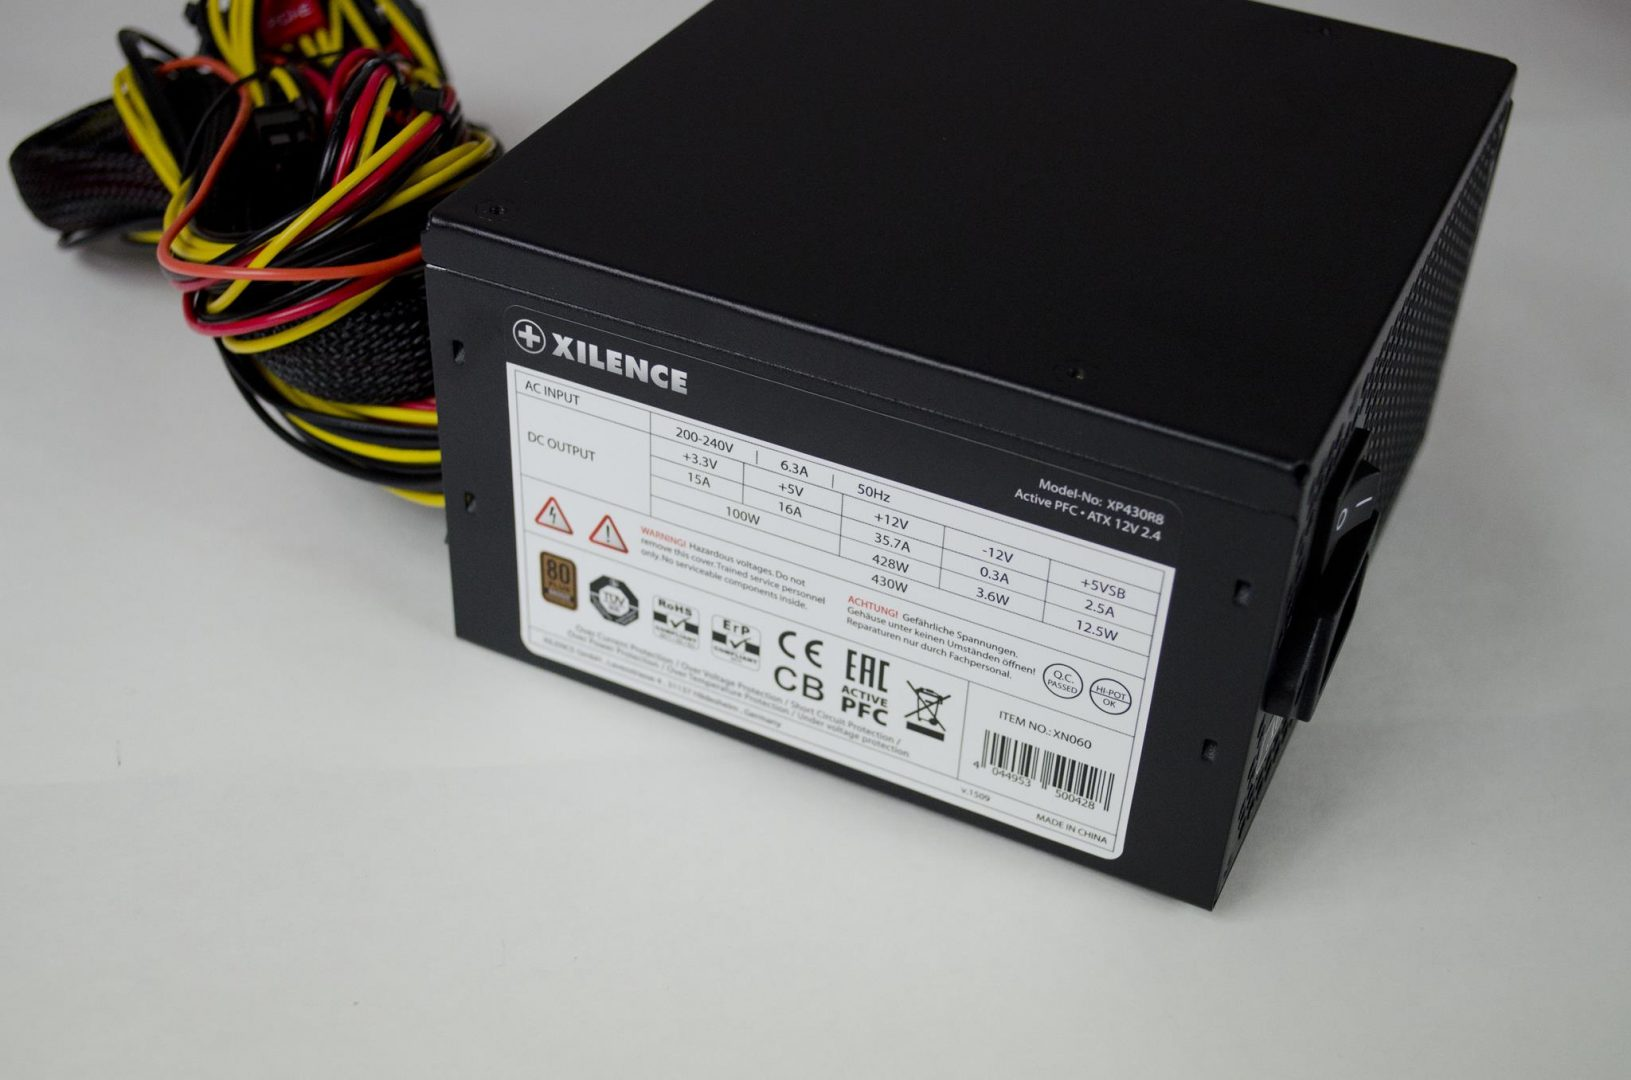 Xilence Performance A+ 430W Power Supply_3